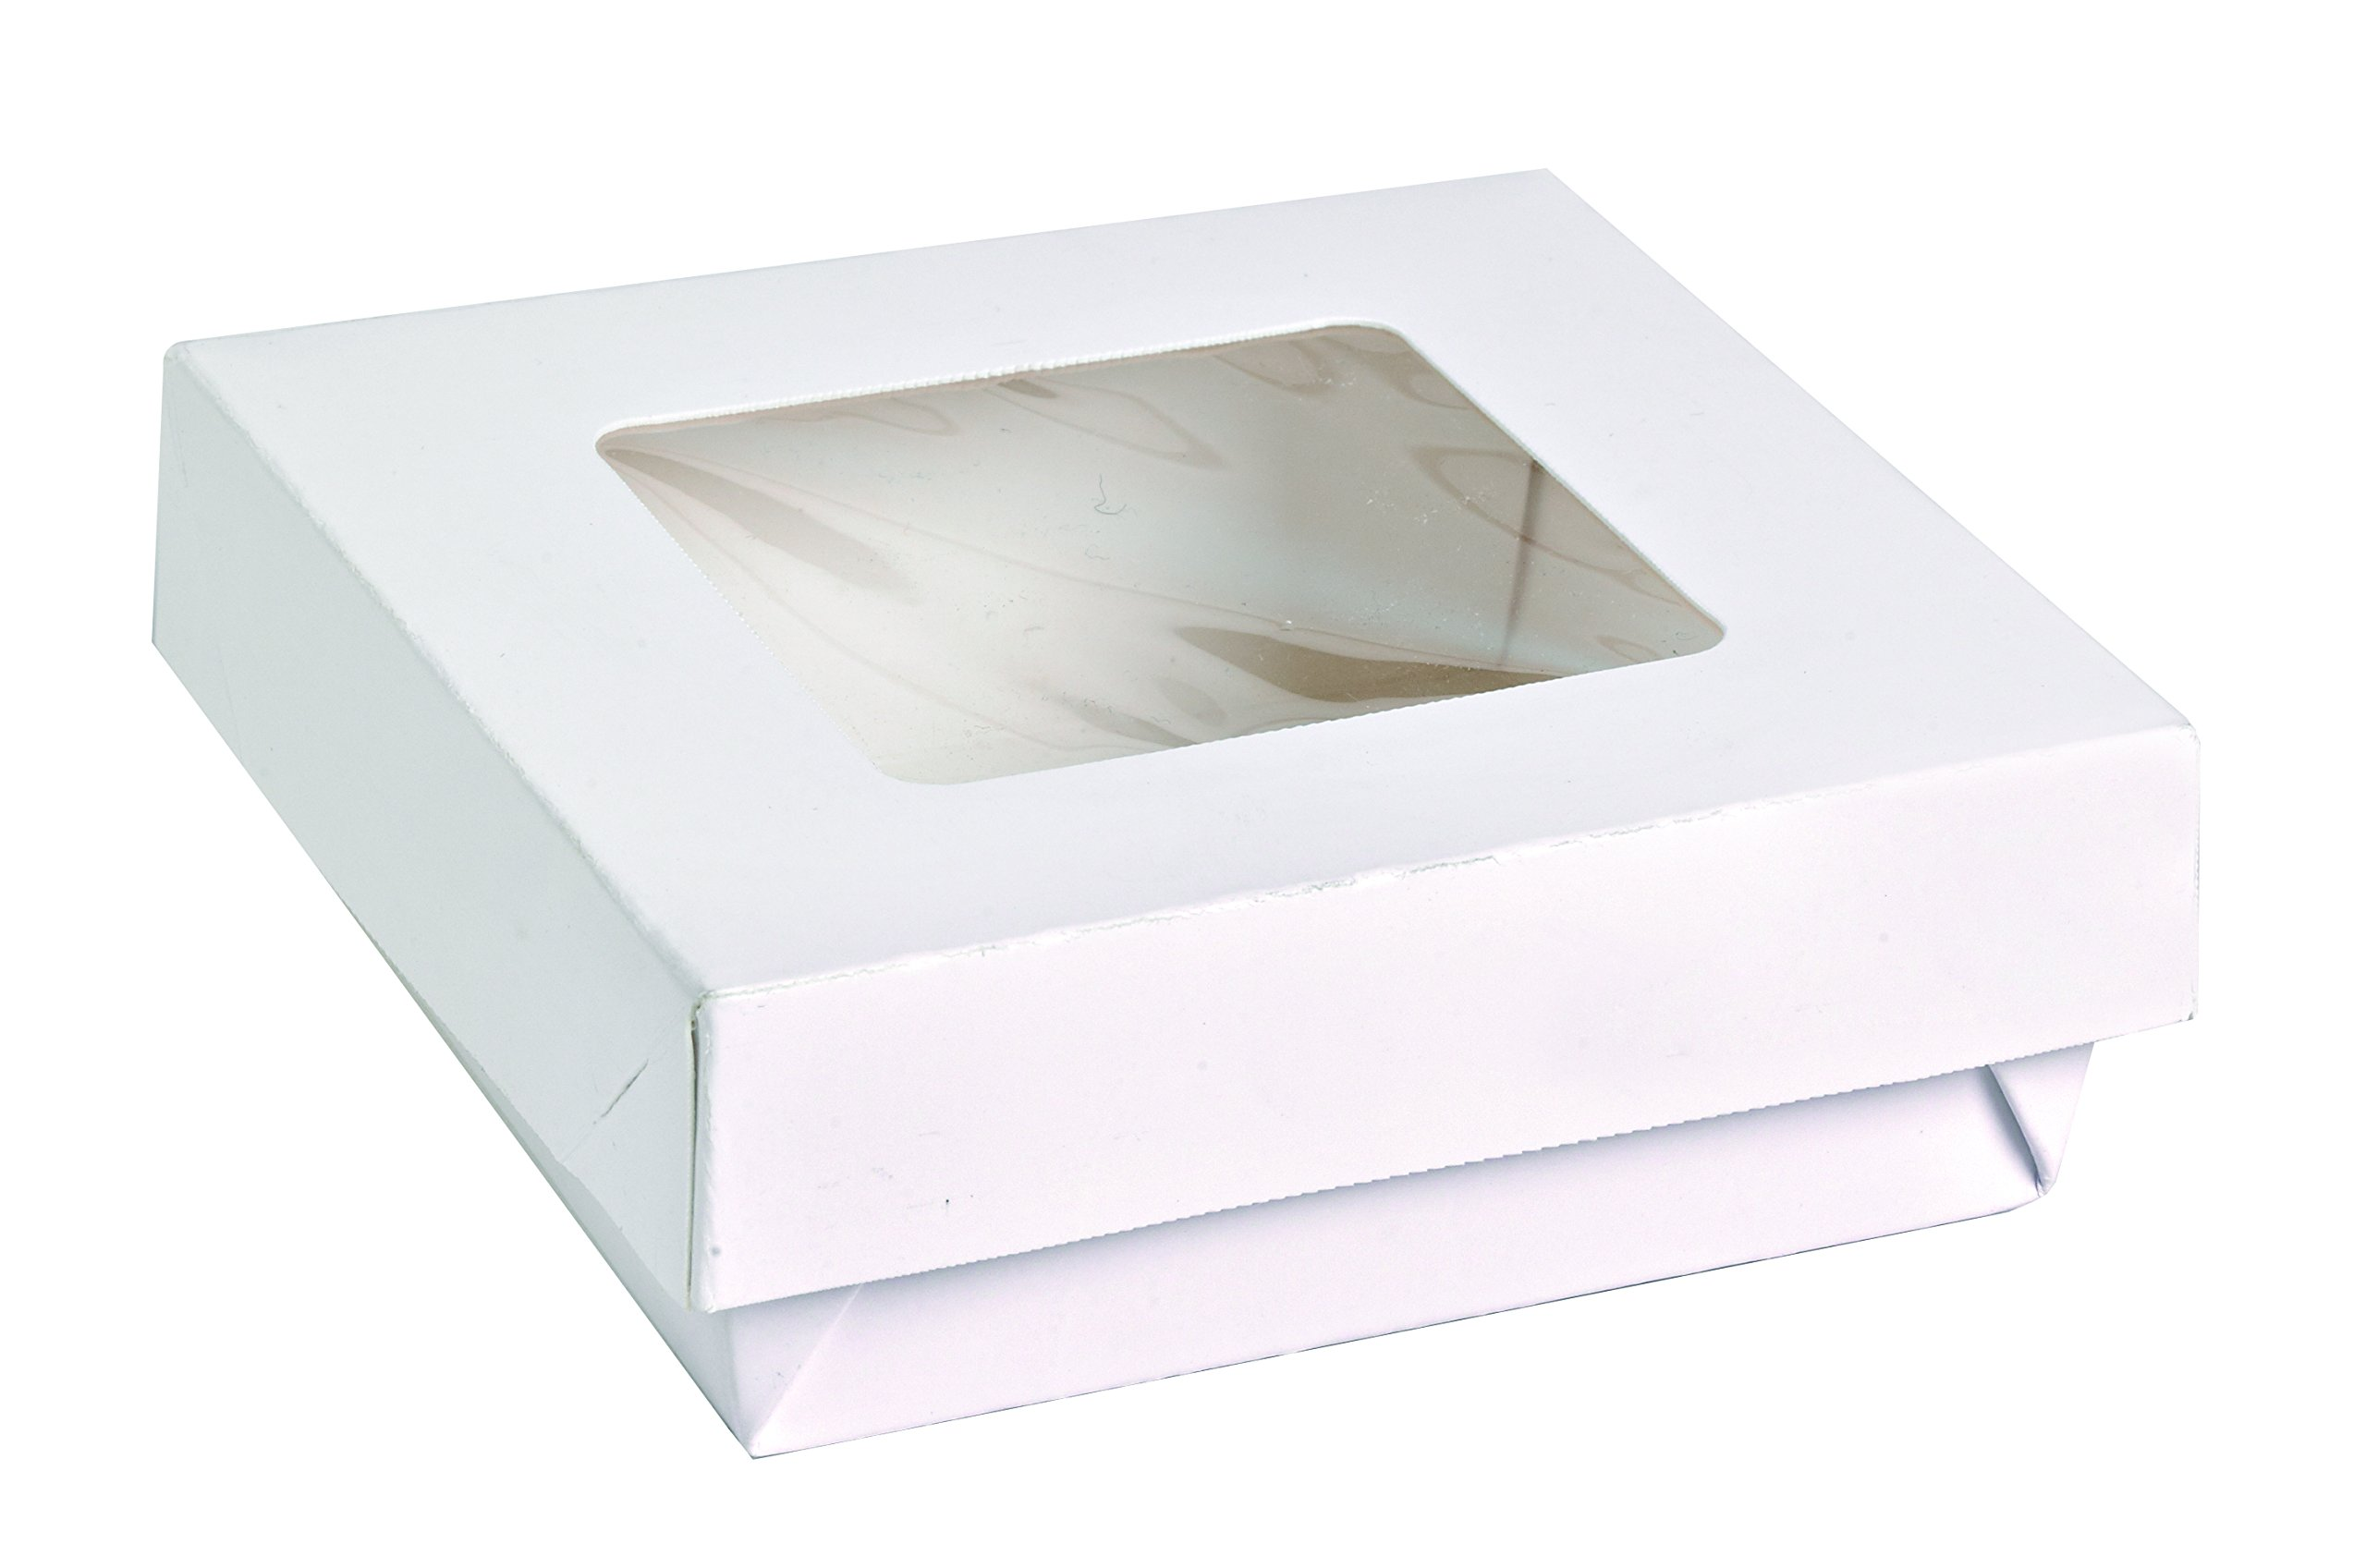 Small White Kray Box with Window Lid (Case of 250), PacknWood - Paper To Go Containers with Lid for Takeout (12 oz, 3.9'' x 3.9'' x 1.6'') 210KRAYWH115